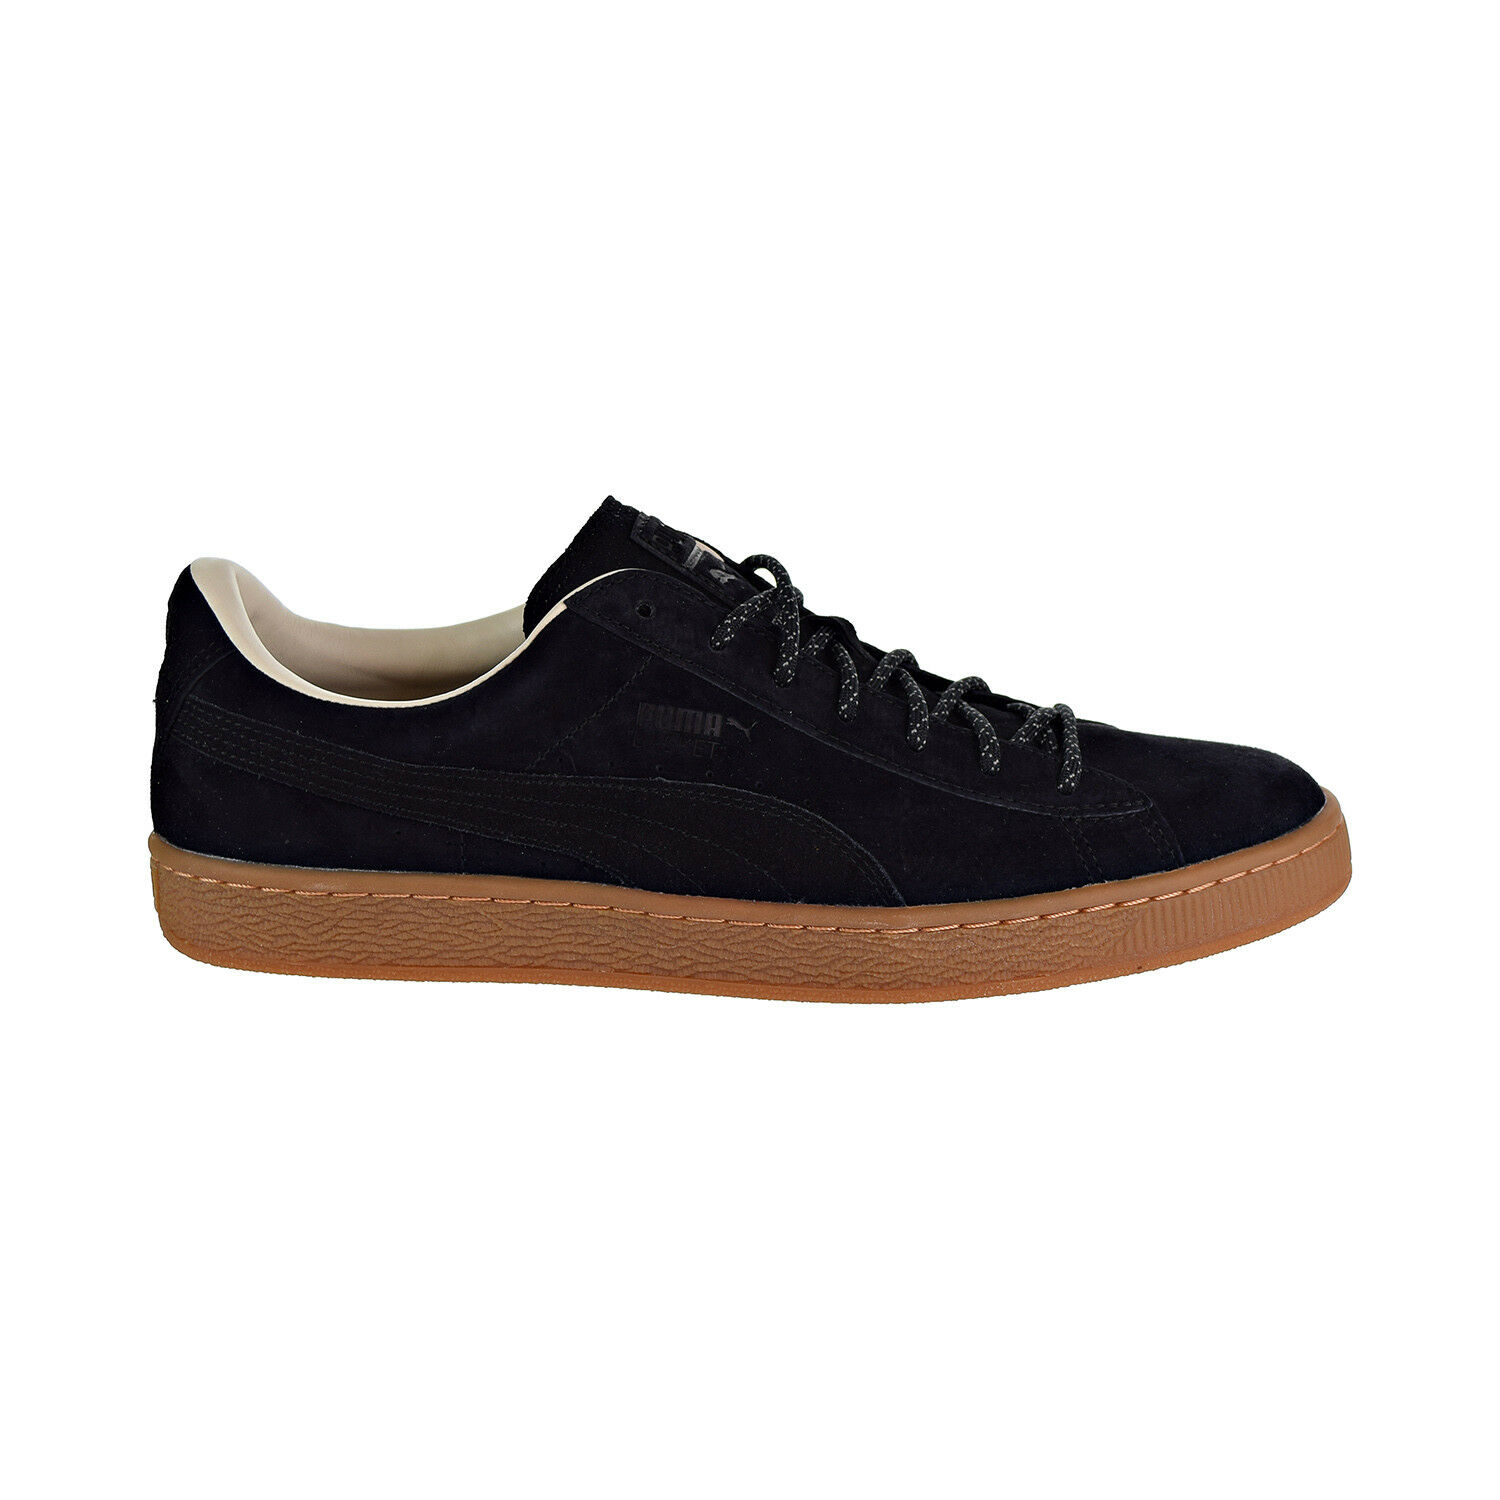 PUMA Basket Classic Winterized Mens Black Suede Lace up SNEAKERS ... 7ae65fc04